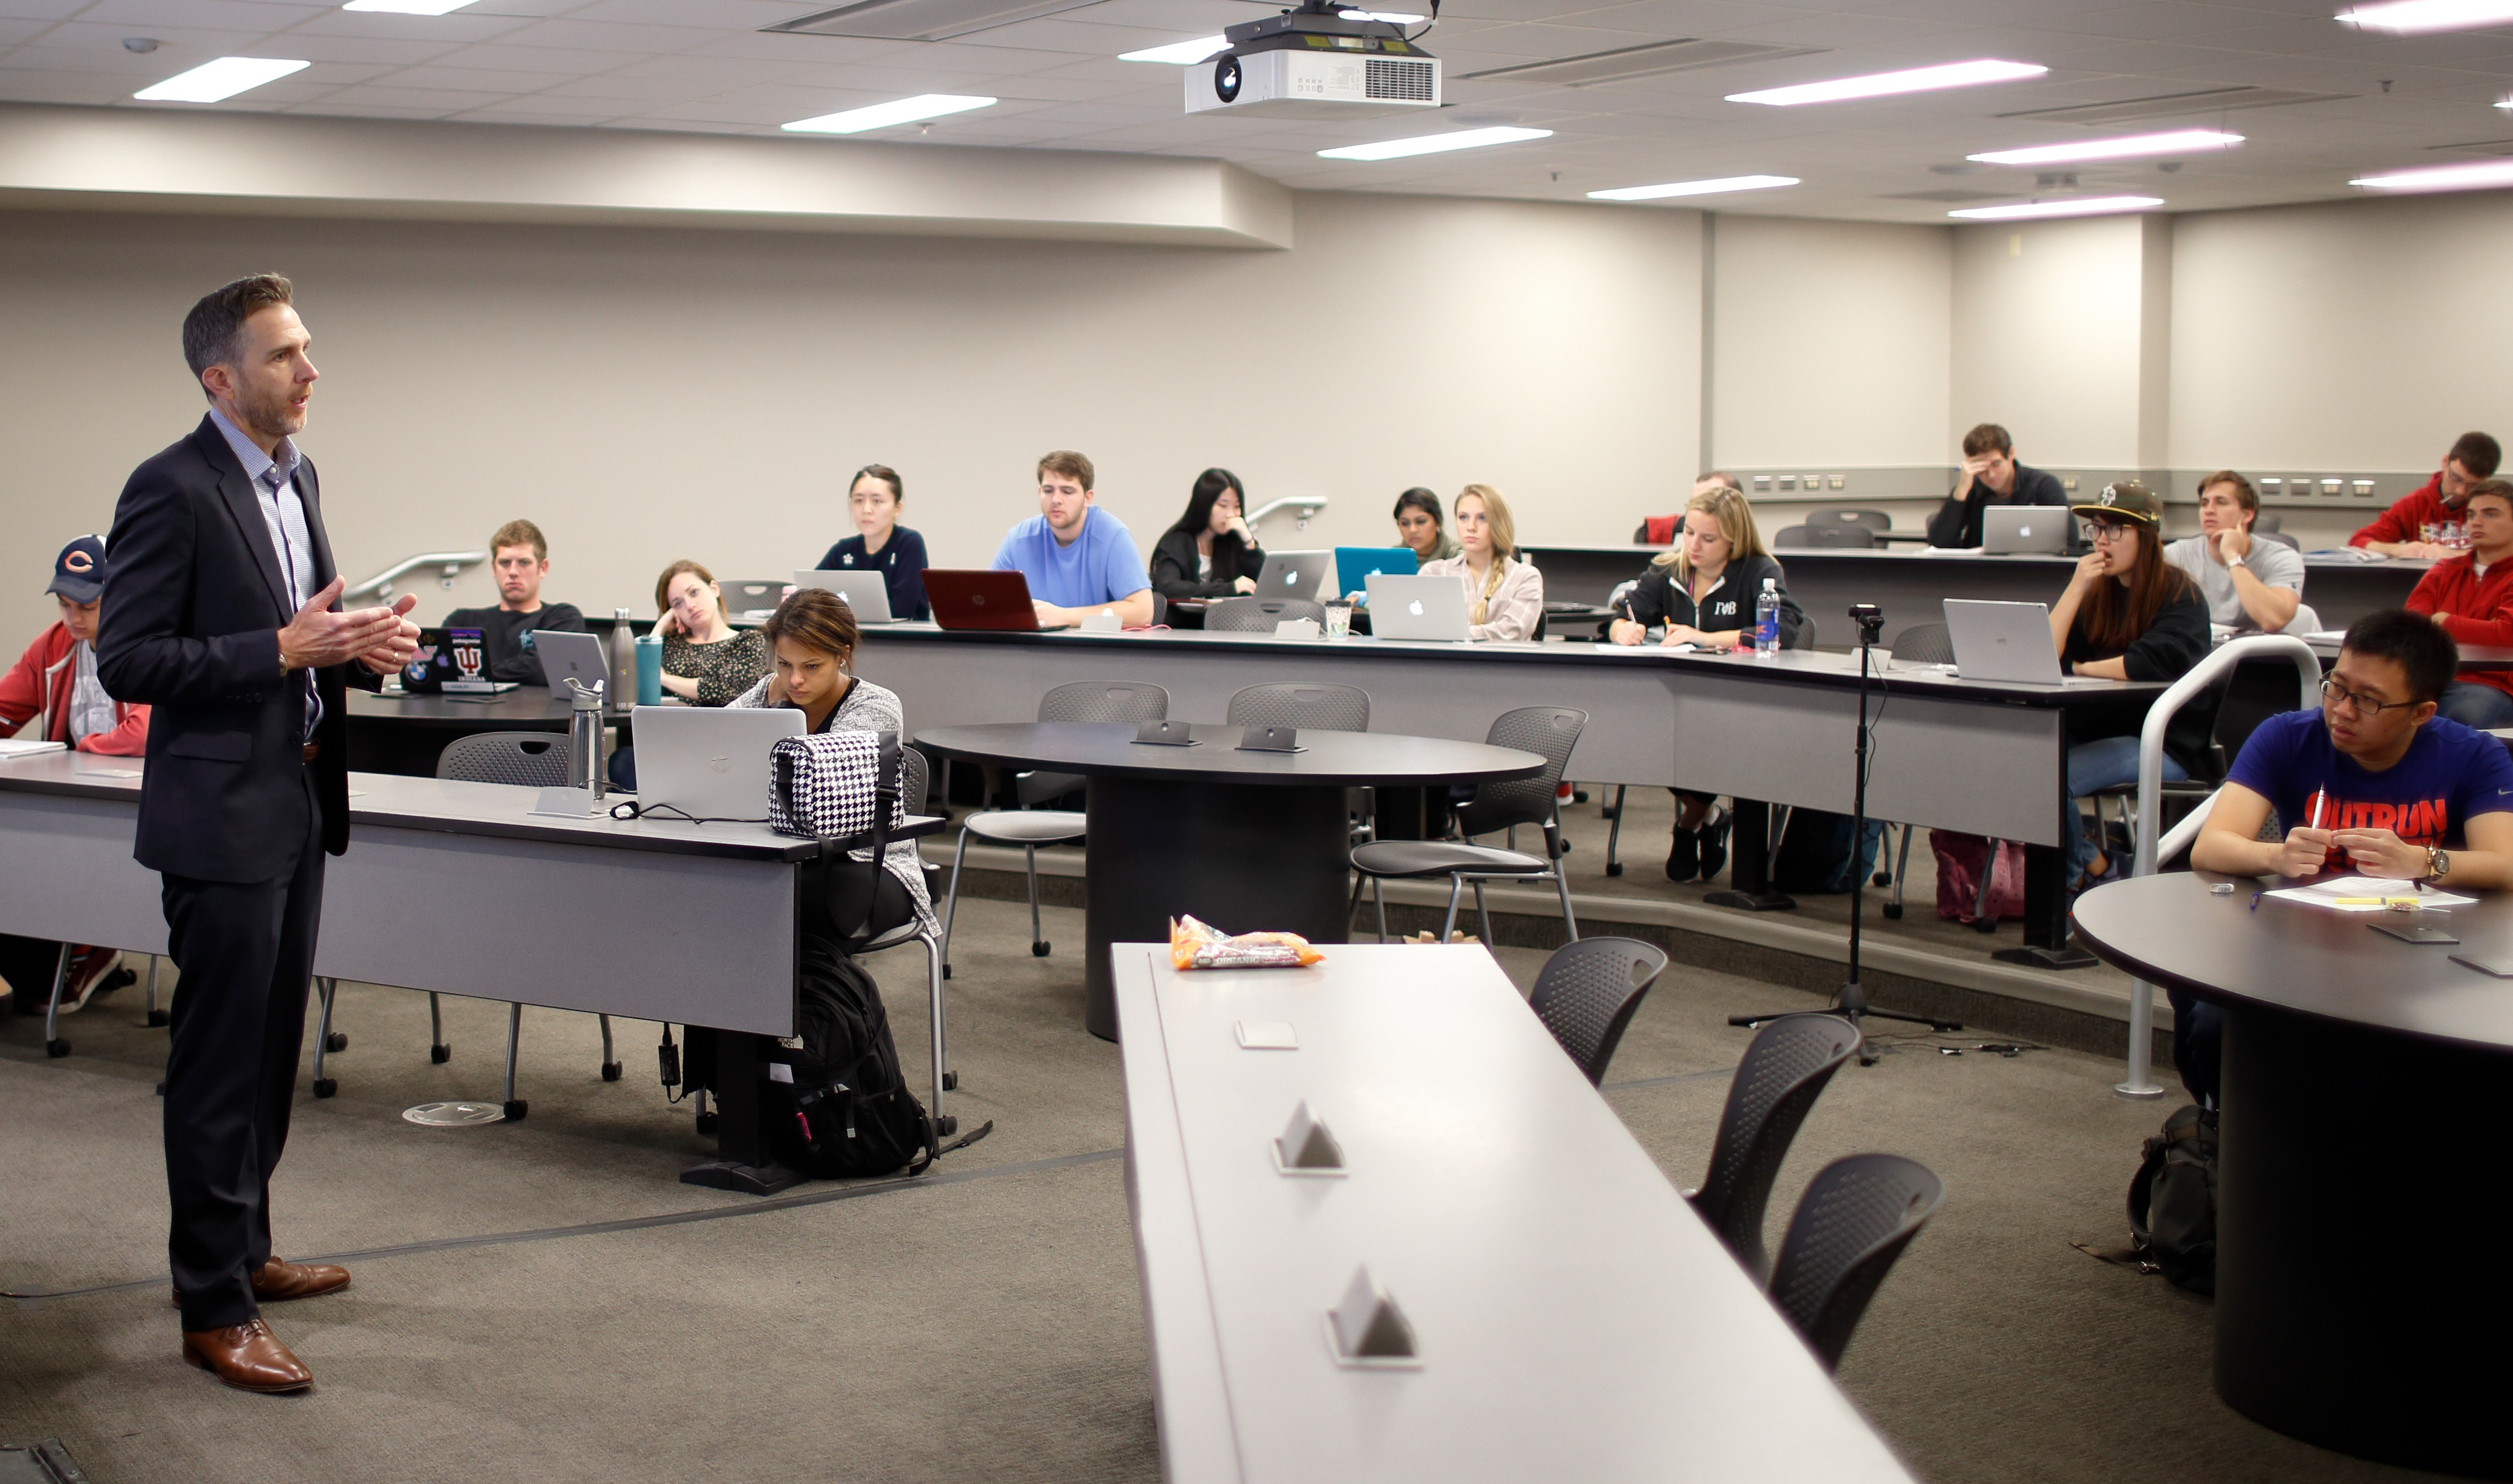 Classroom photo of Gerry Hays, who teaches finance and entrepreneurship at Kelley, taken on Monday, Oct. 31, 2016.